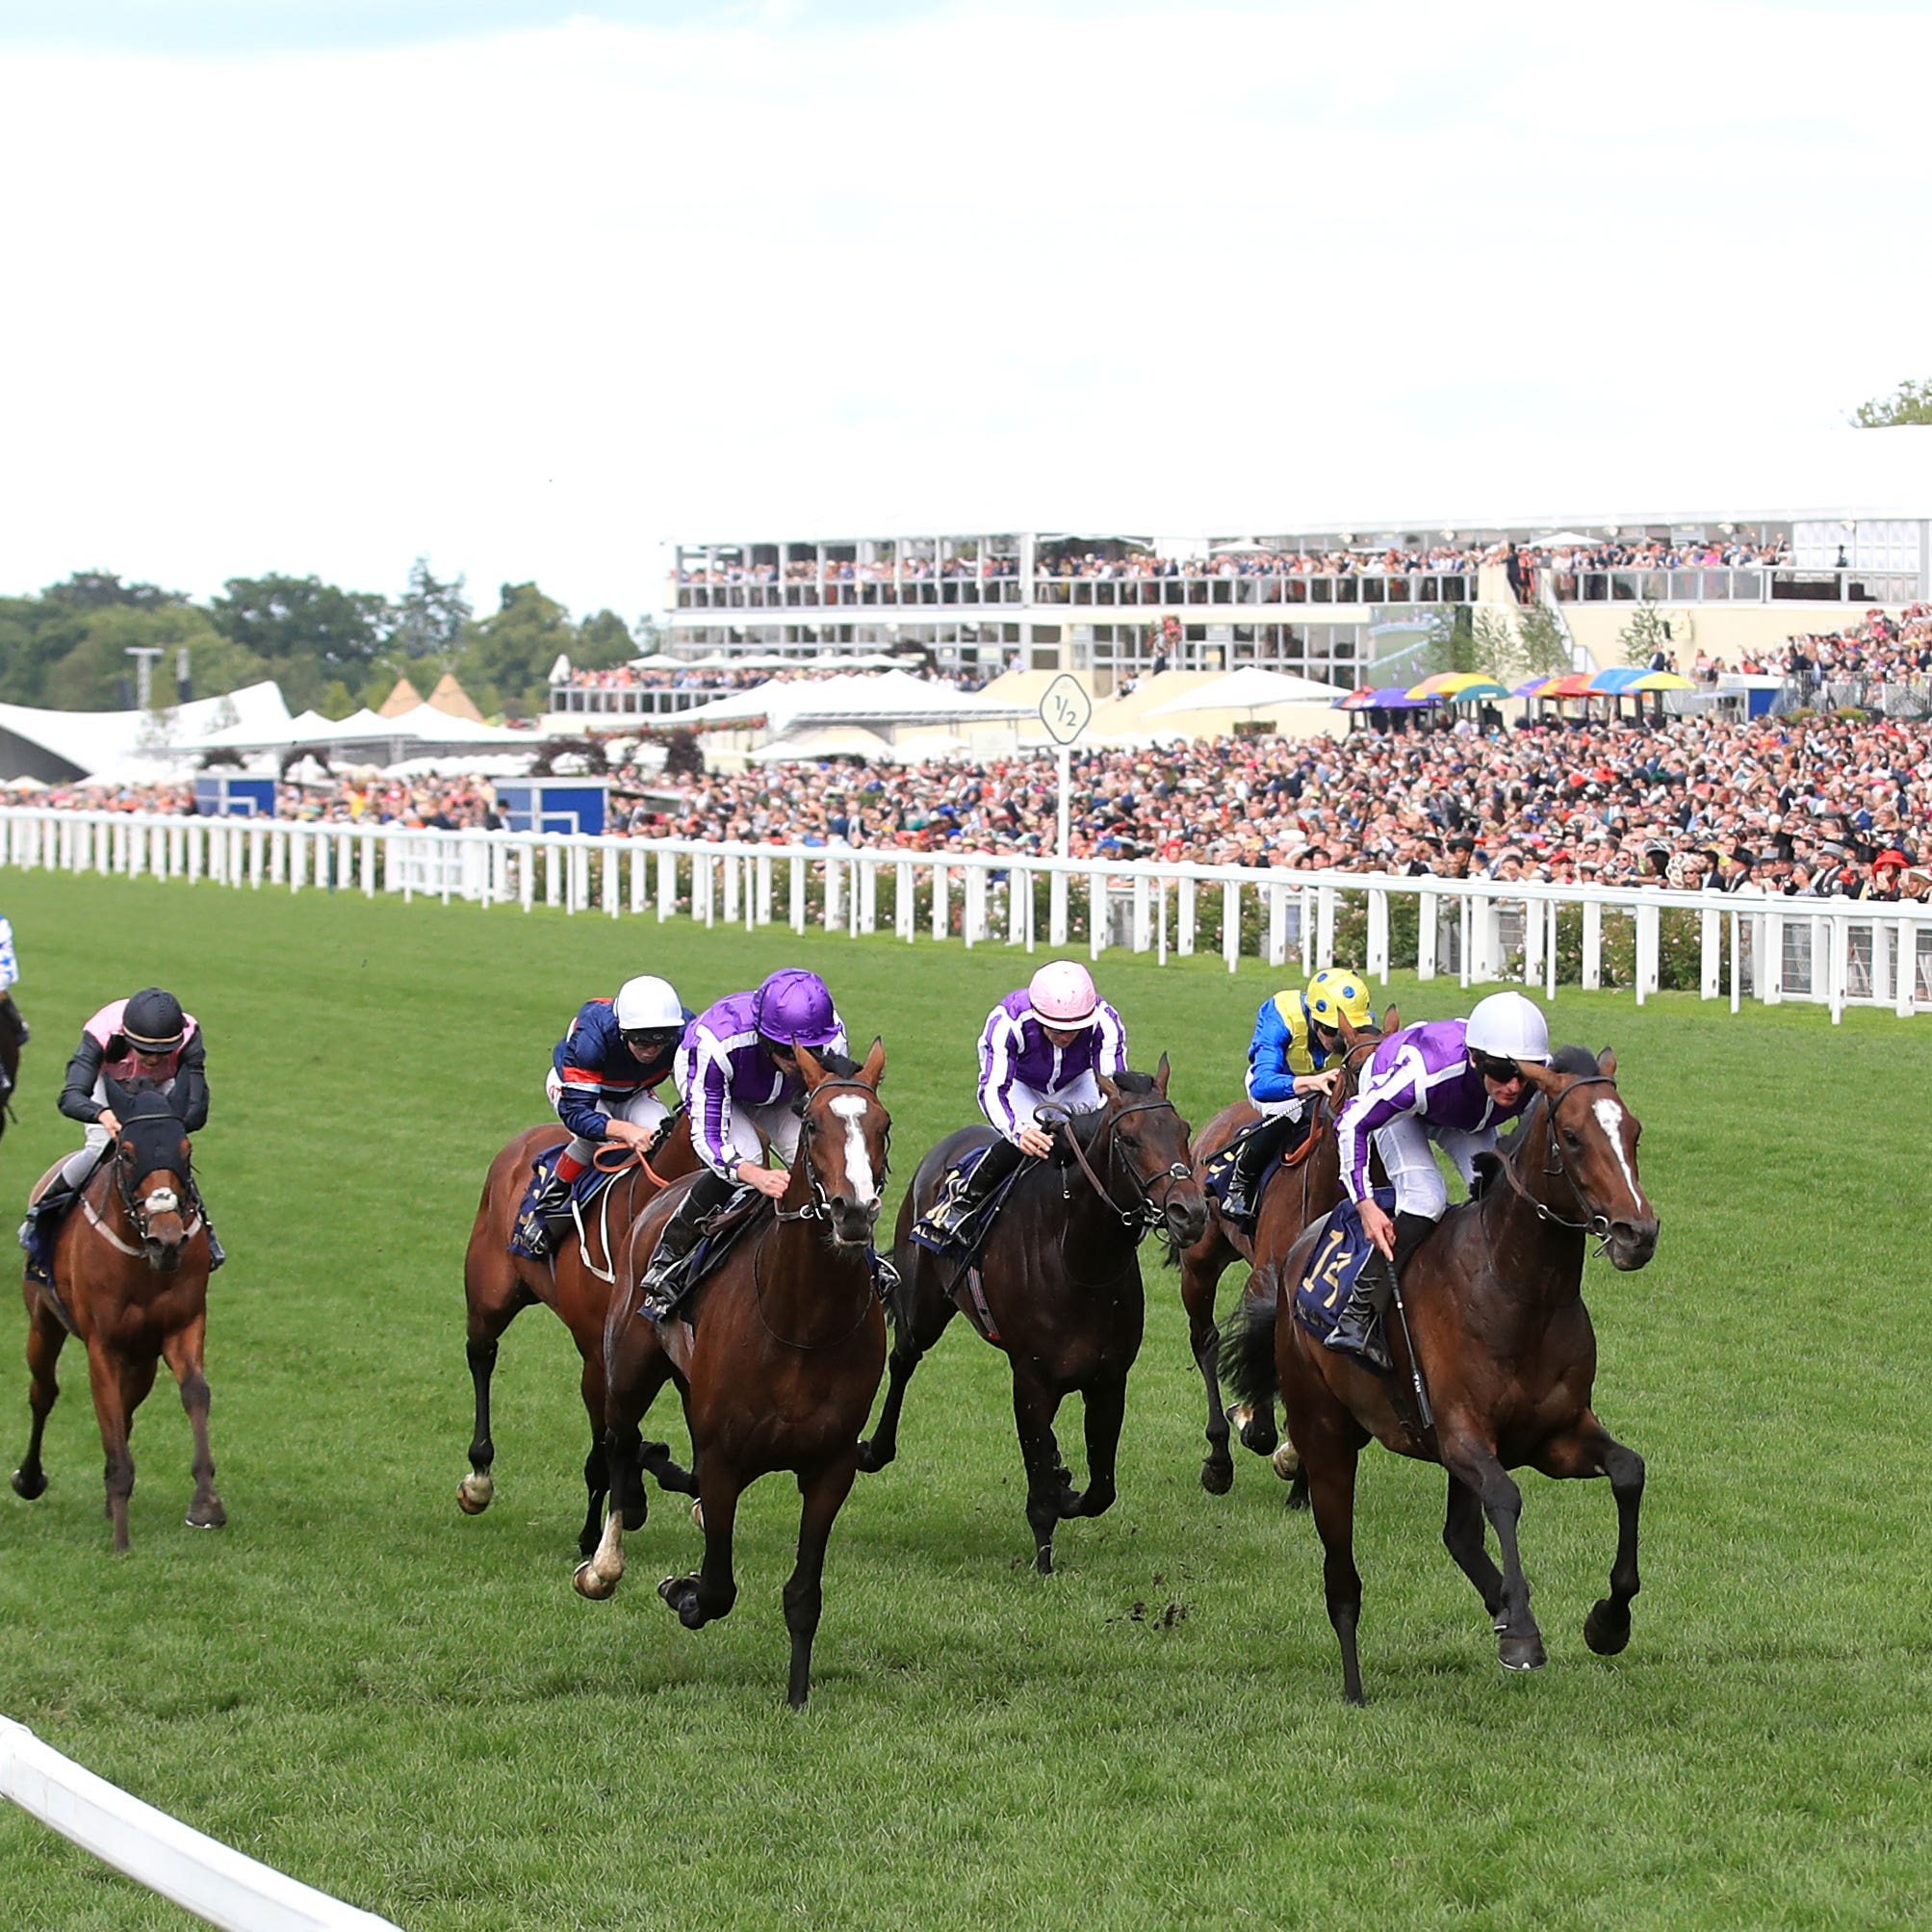 Persian Moon (fifth from right, white cap) ran a fine race at Royal Ascot